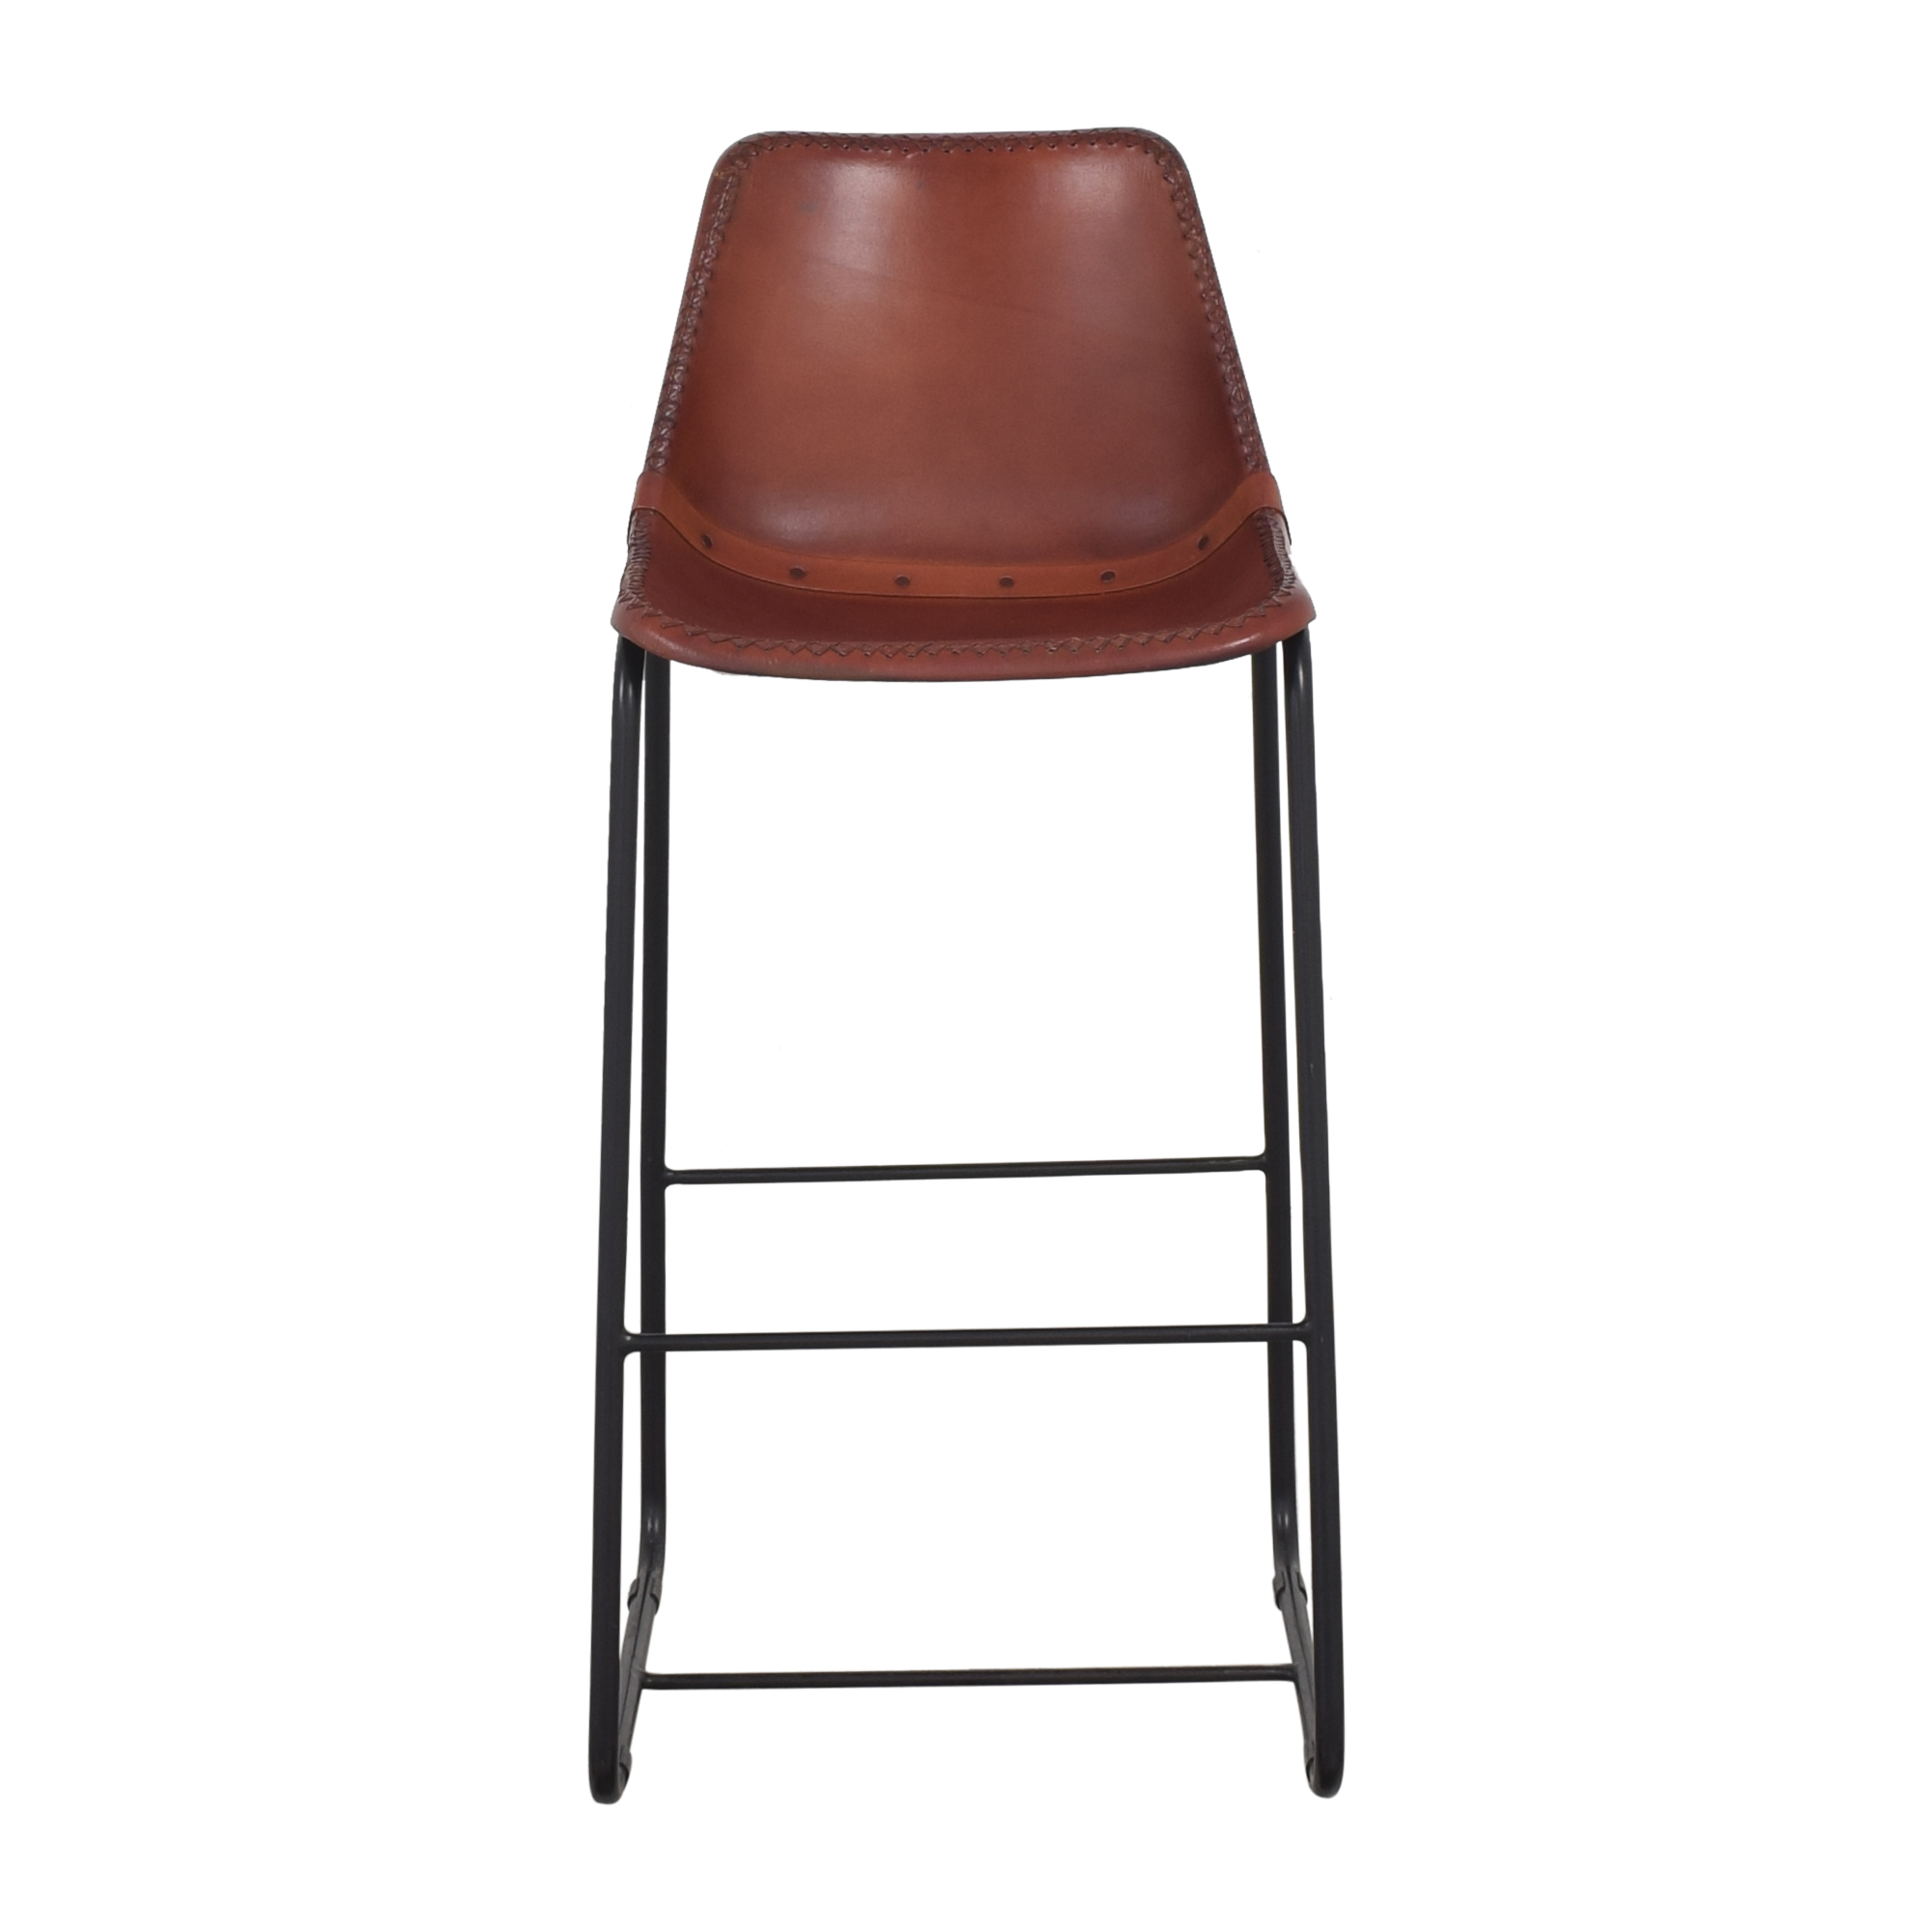 CB2 CB2 Roadhouse Bar Stool pa